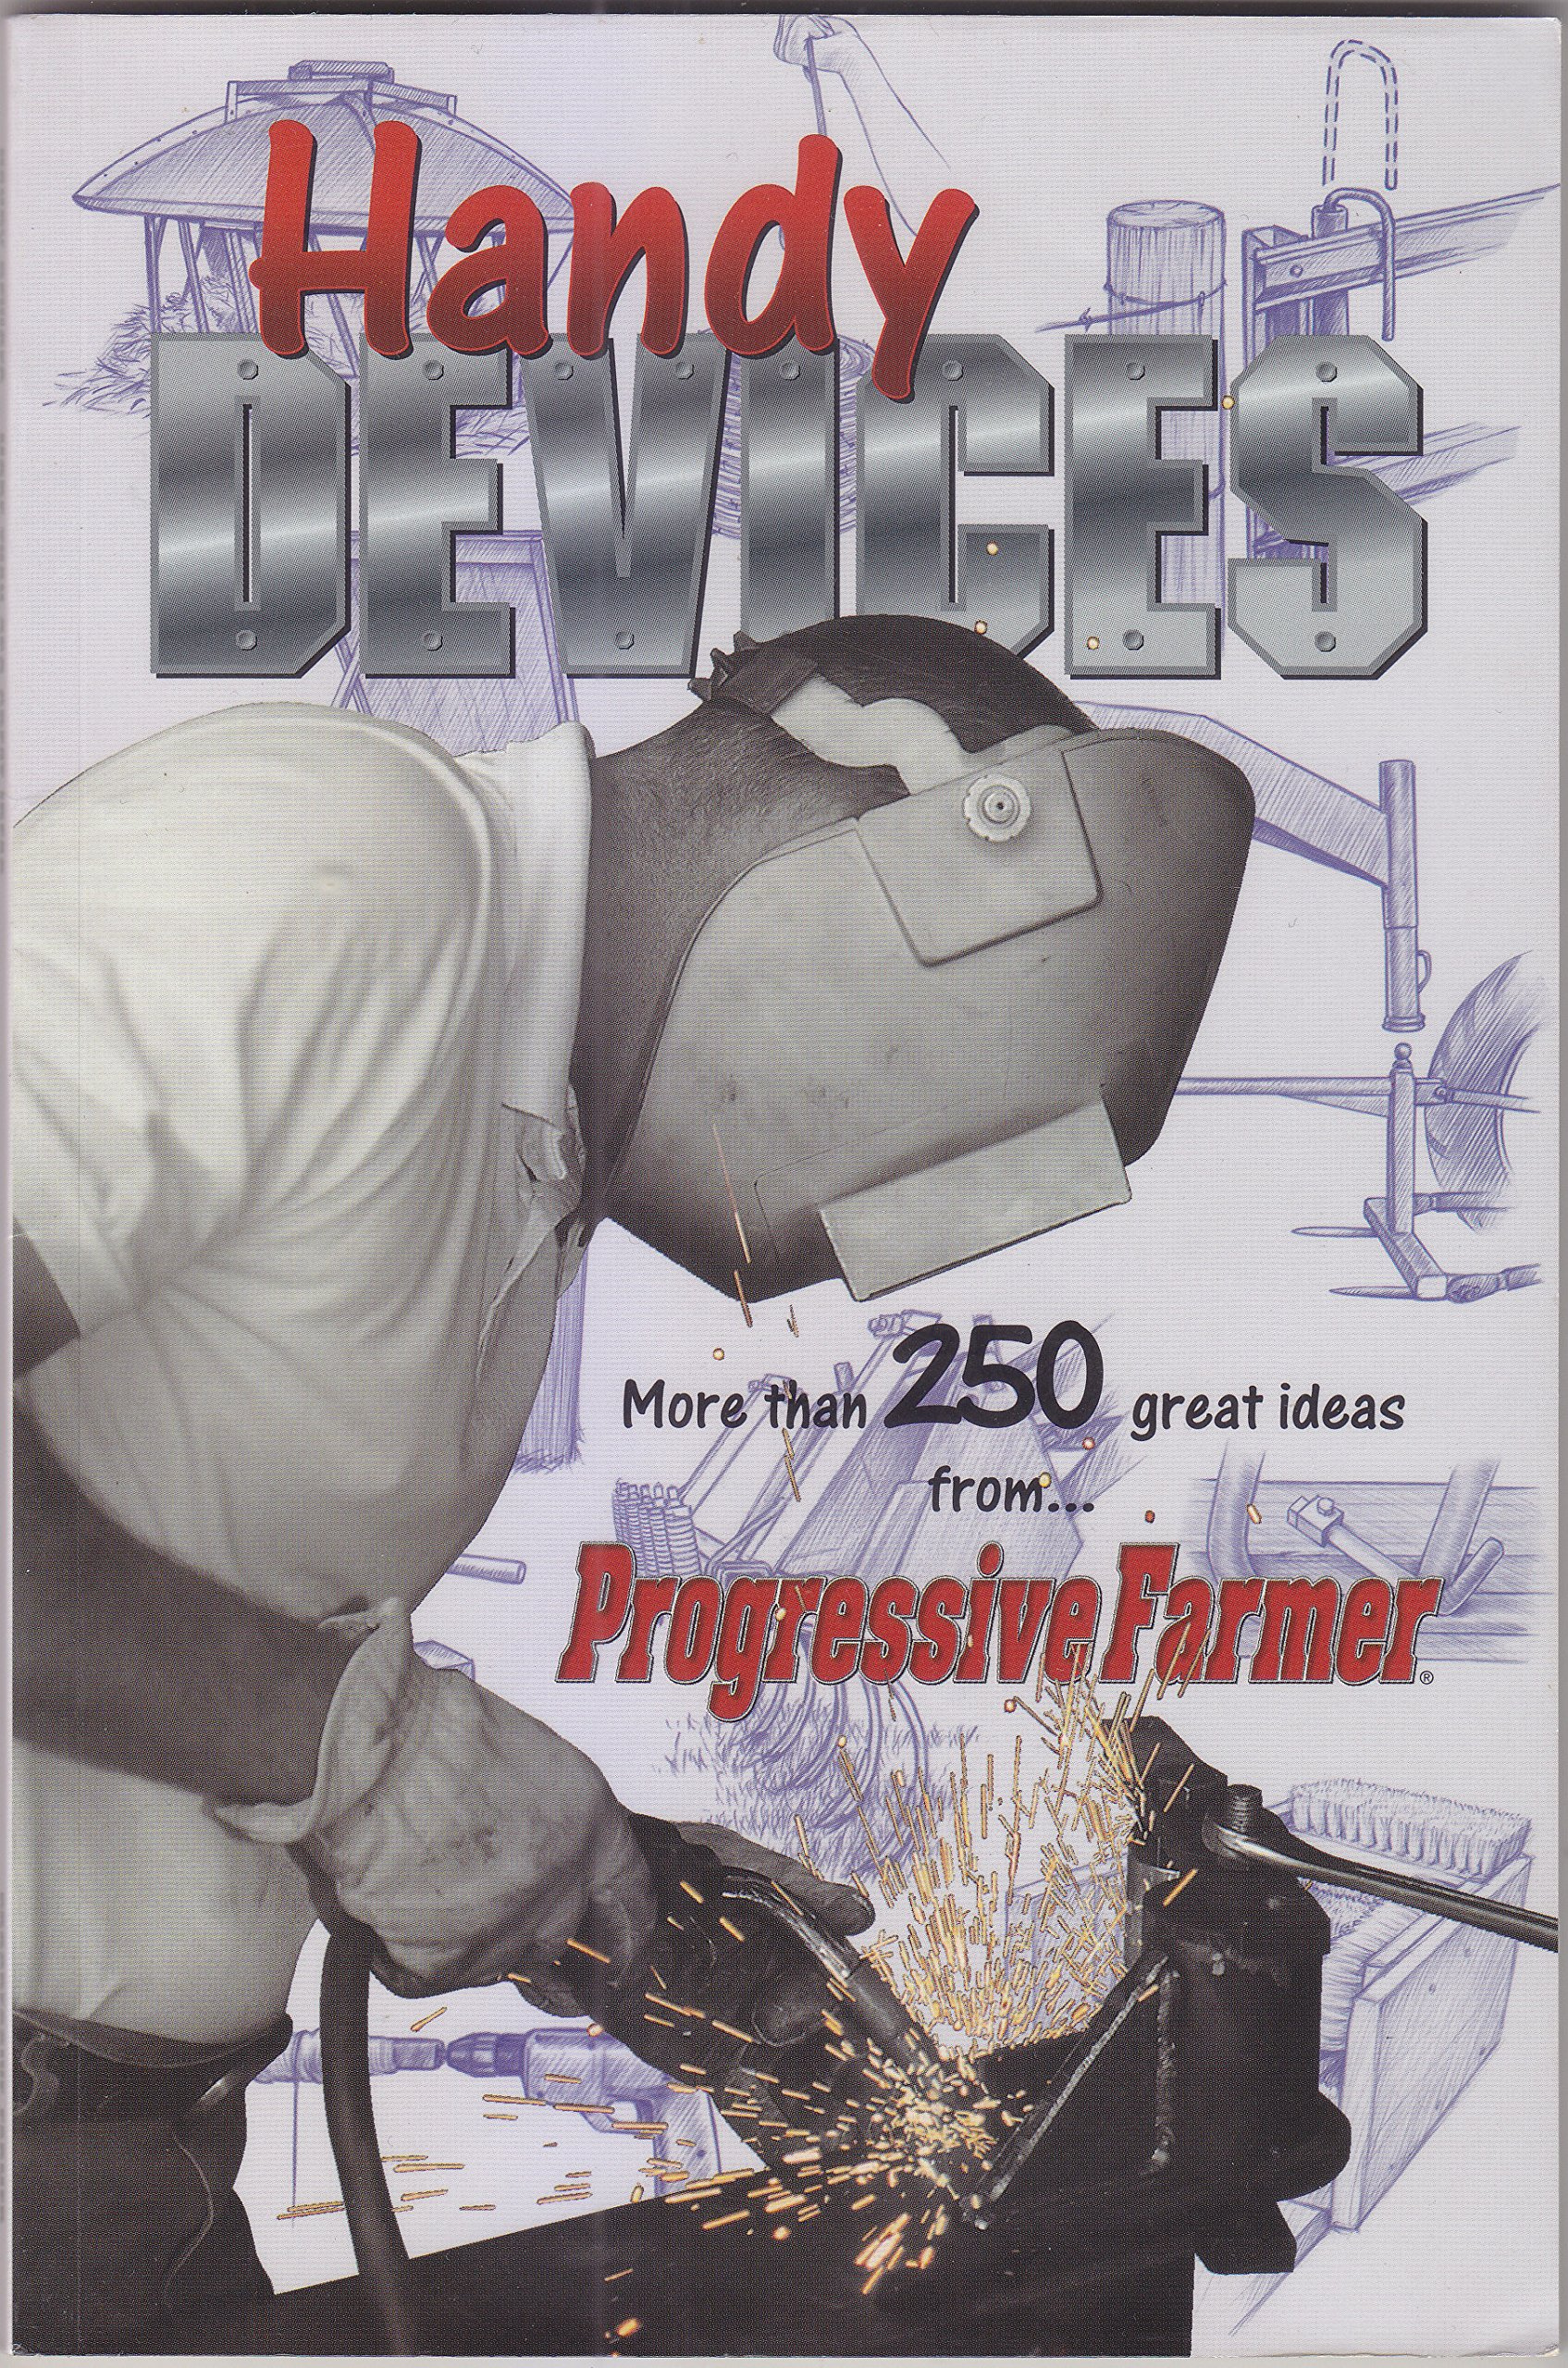 Handy Devices: More Than 250 Great Ideas from Progressive Farmer pdf